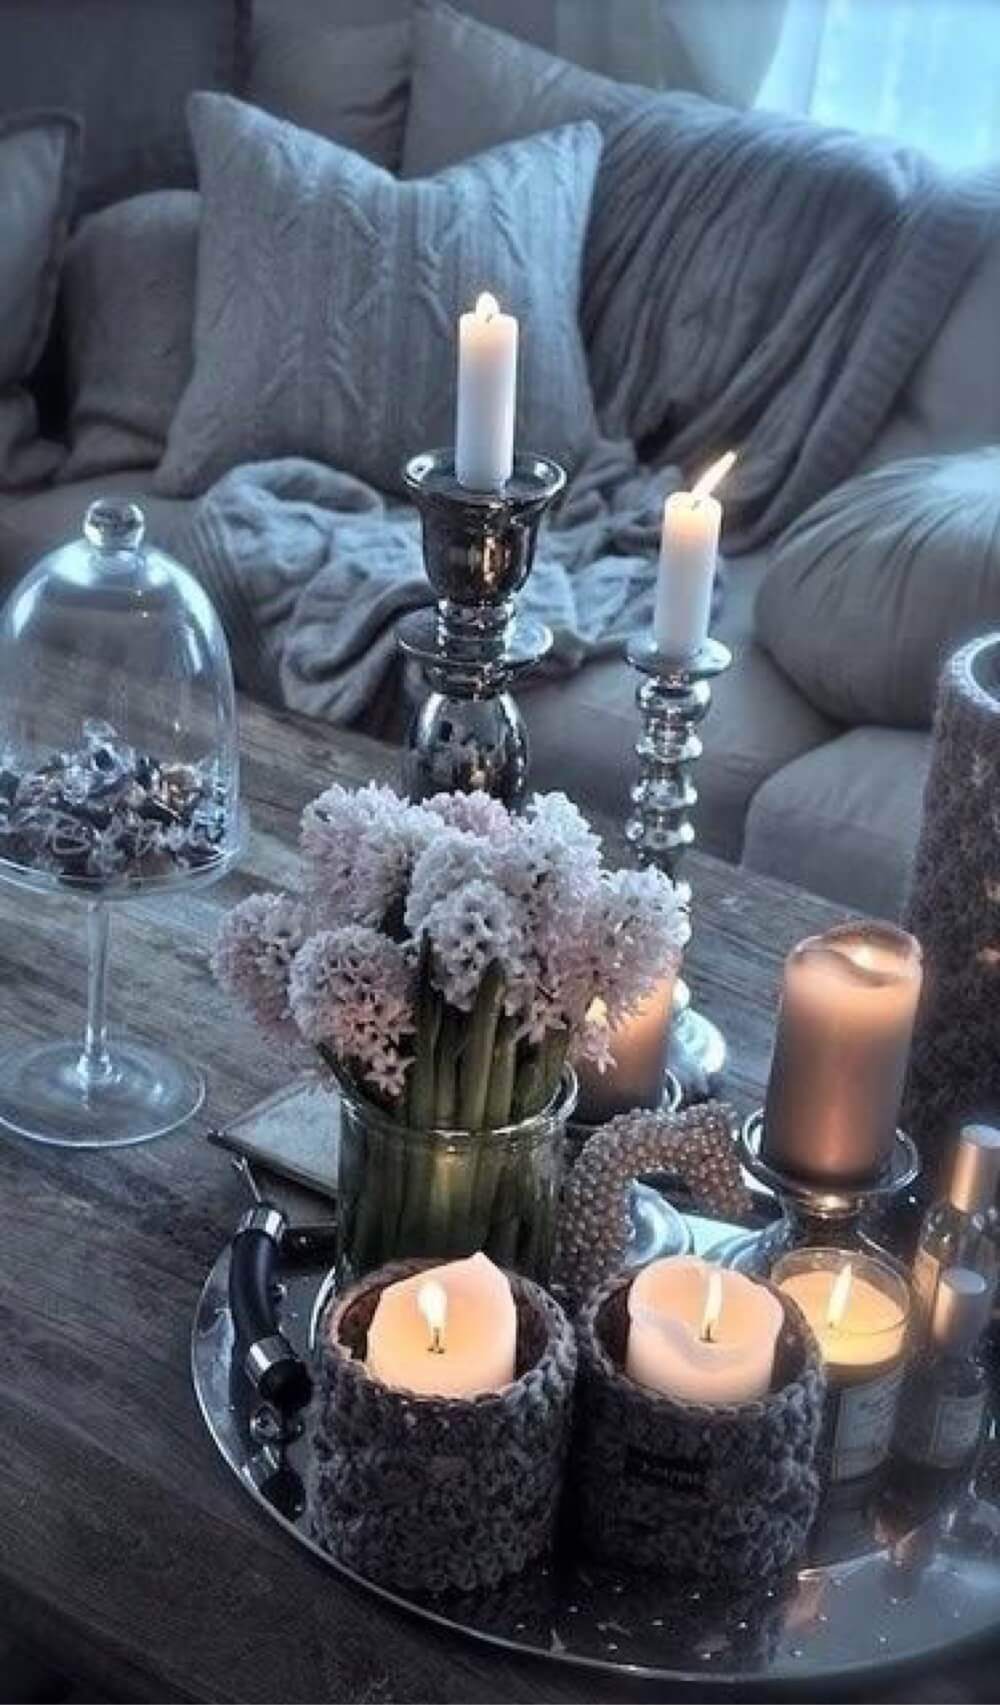 Lively and Functional Rustic Glam Decorations | living ...